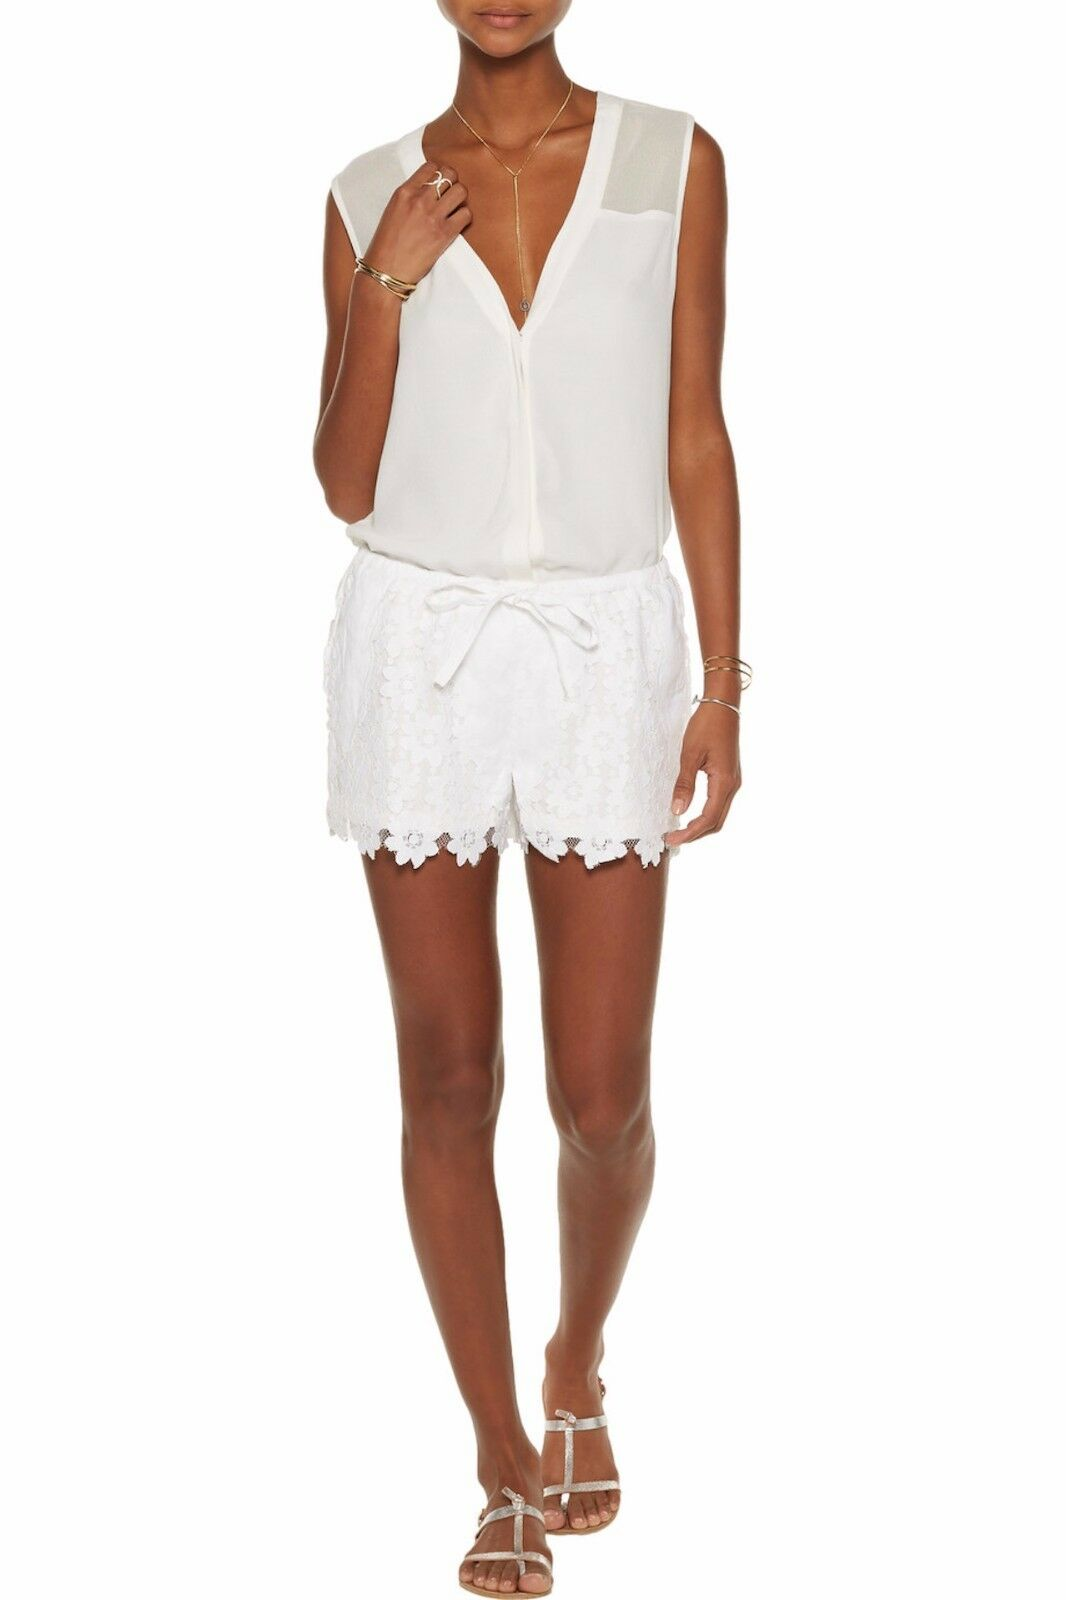 W118 BY WALTER BAKER Jasper Floral Lace Paneled Cotton Shorts White Sz M  128NWT